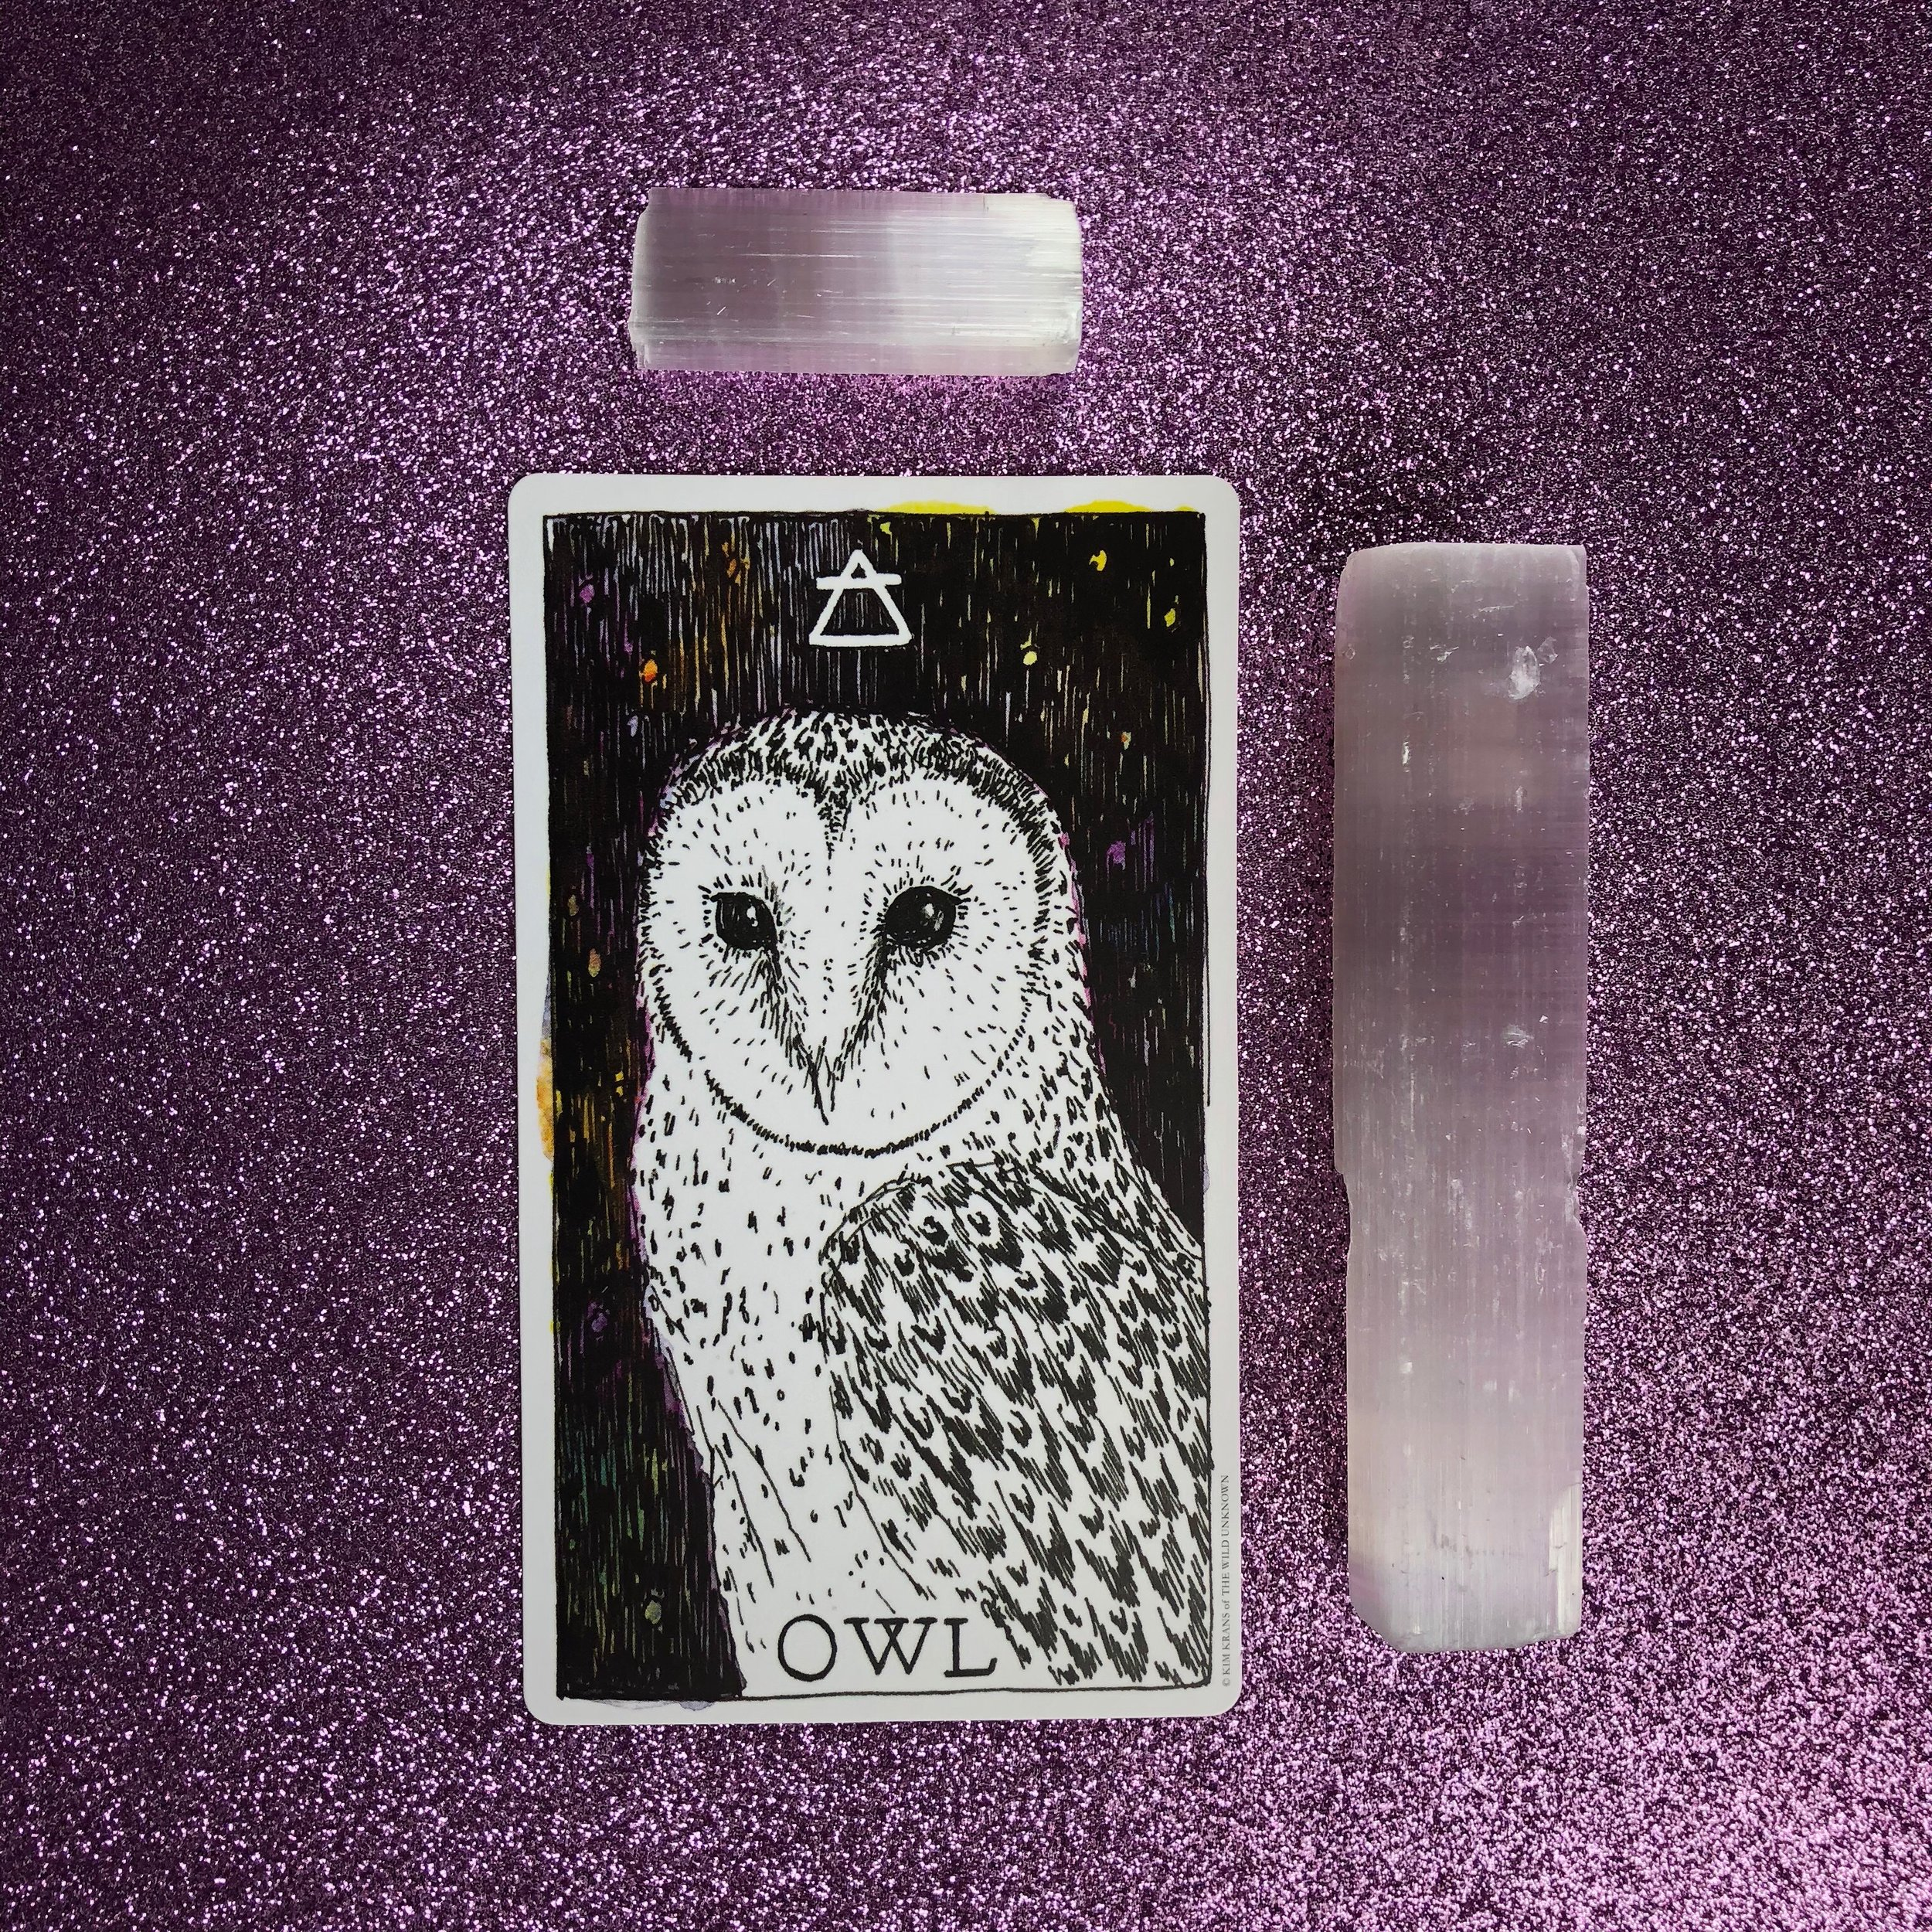 The Owl from The Wild Unknown Animal Spirit deck